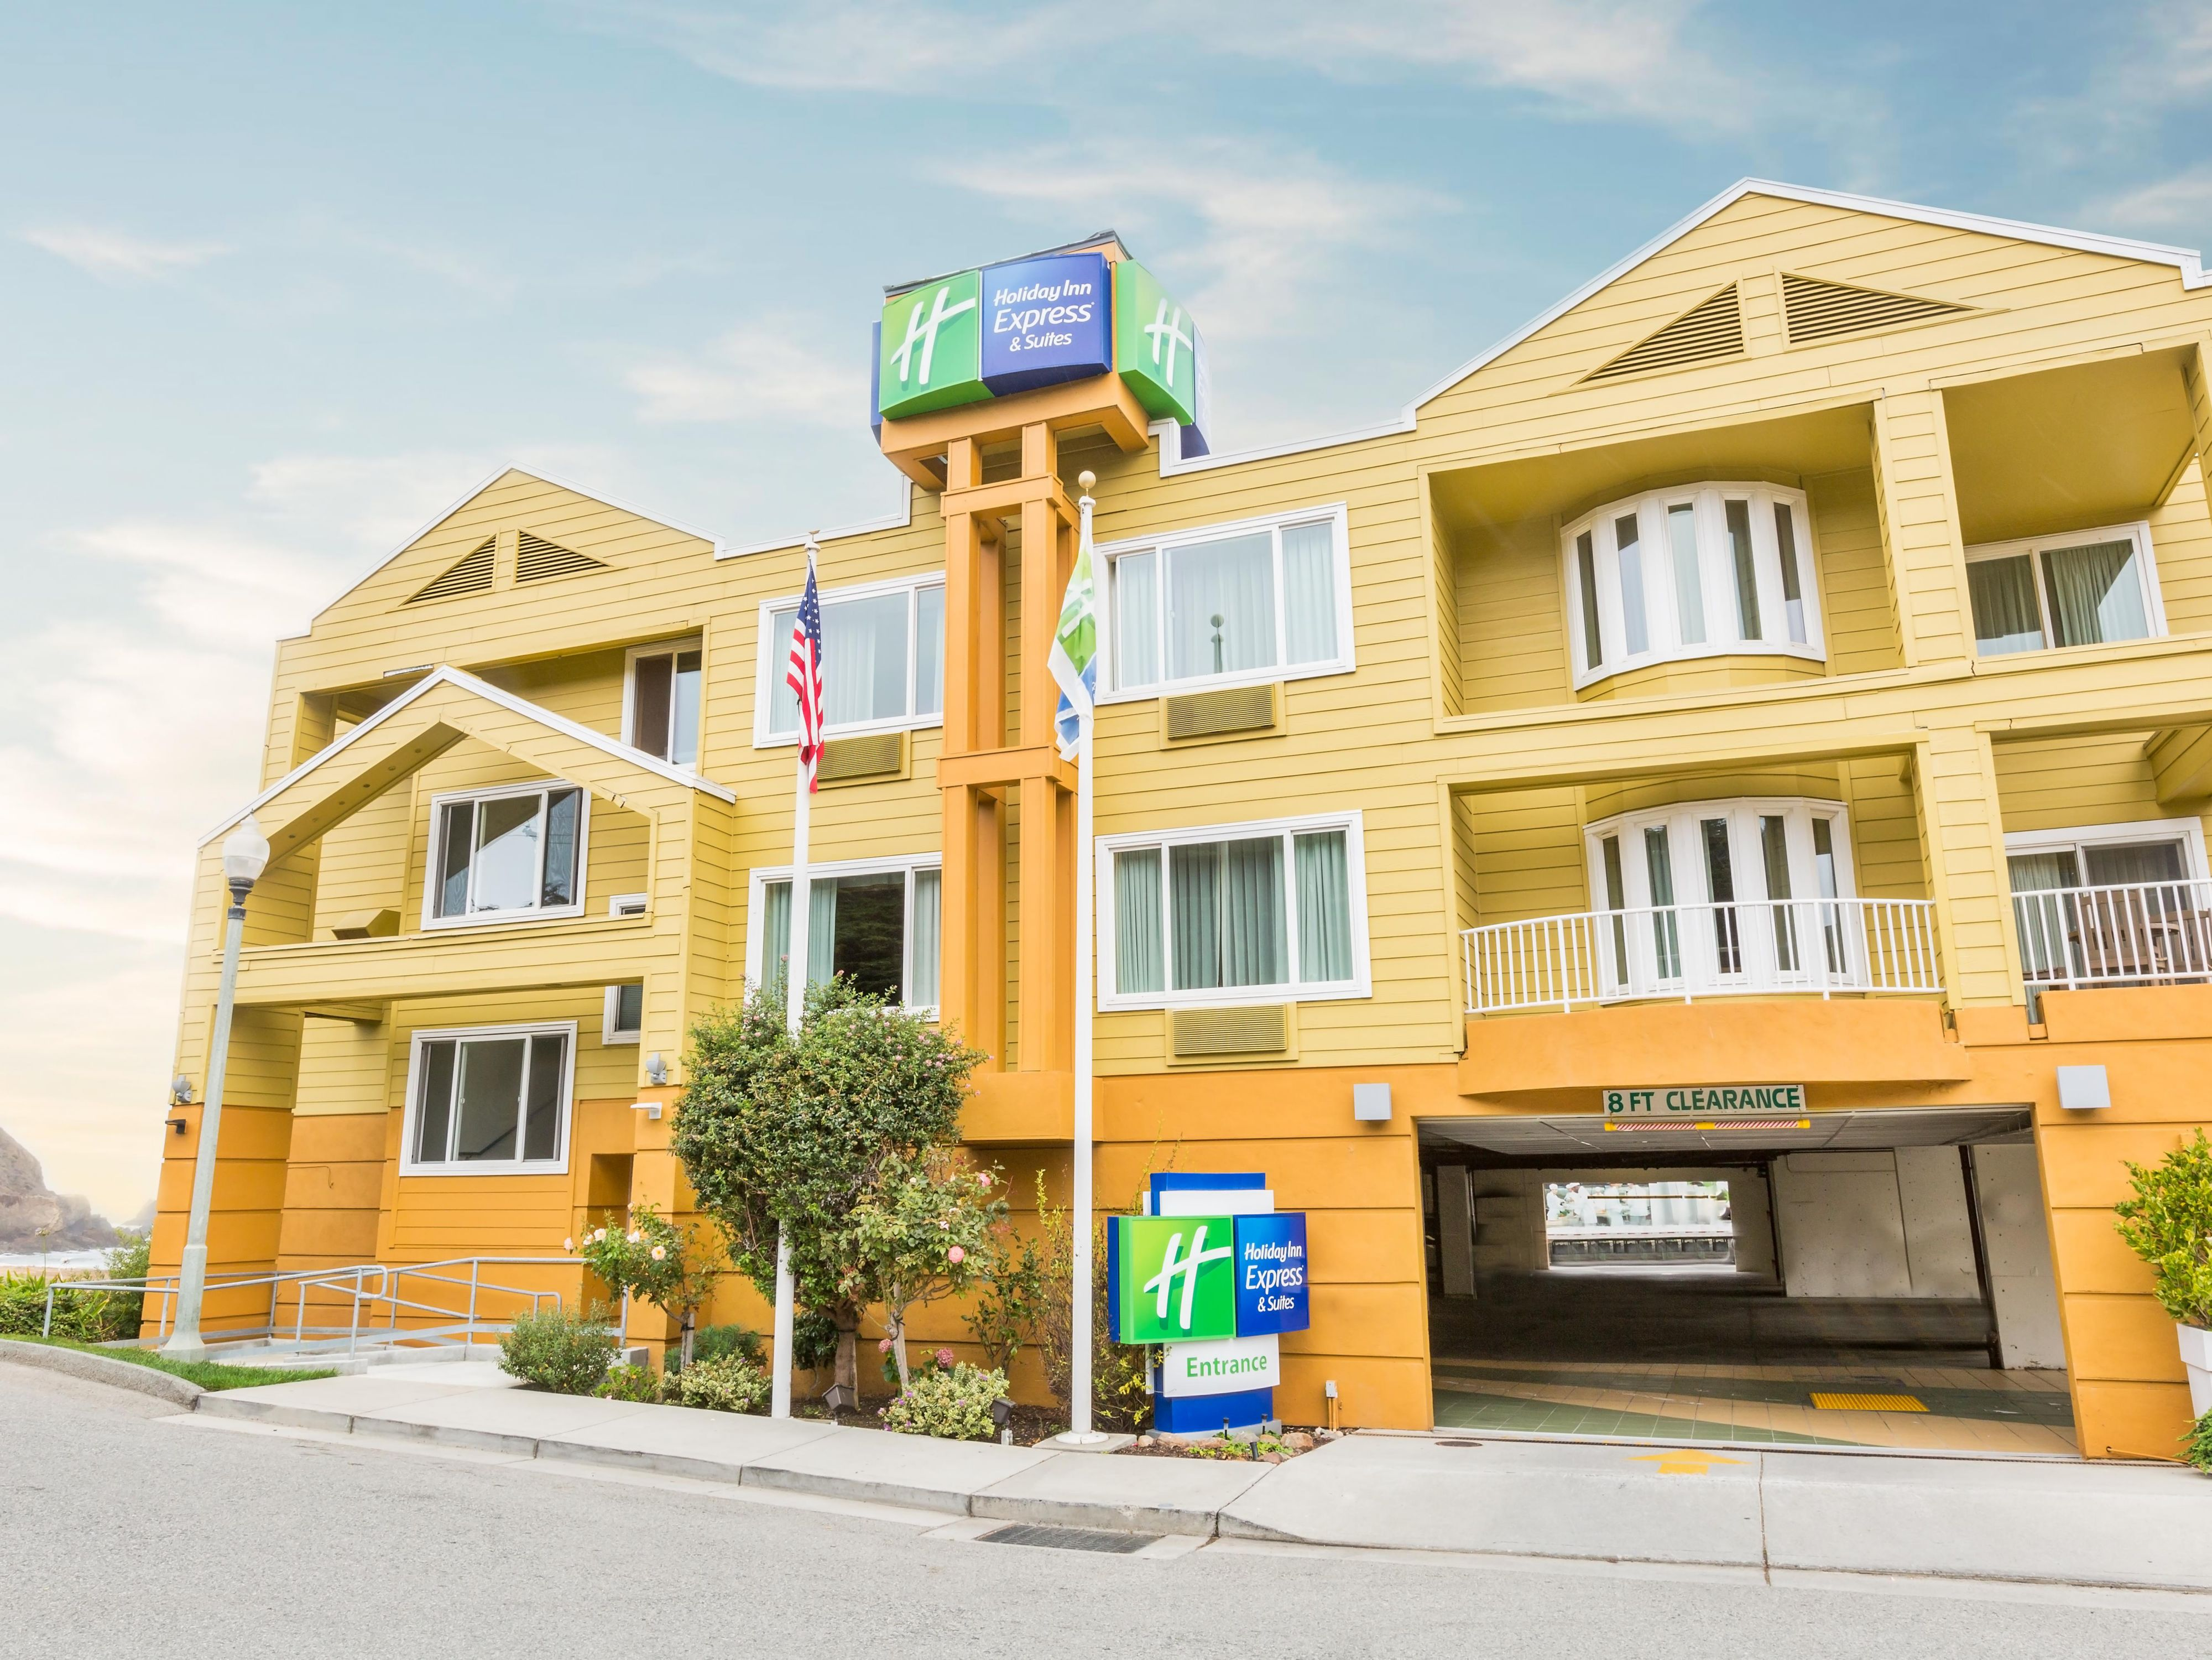 Holiday Inn Express and Suites Pacifica